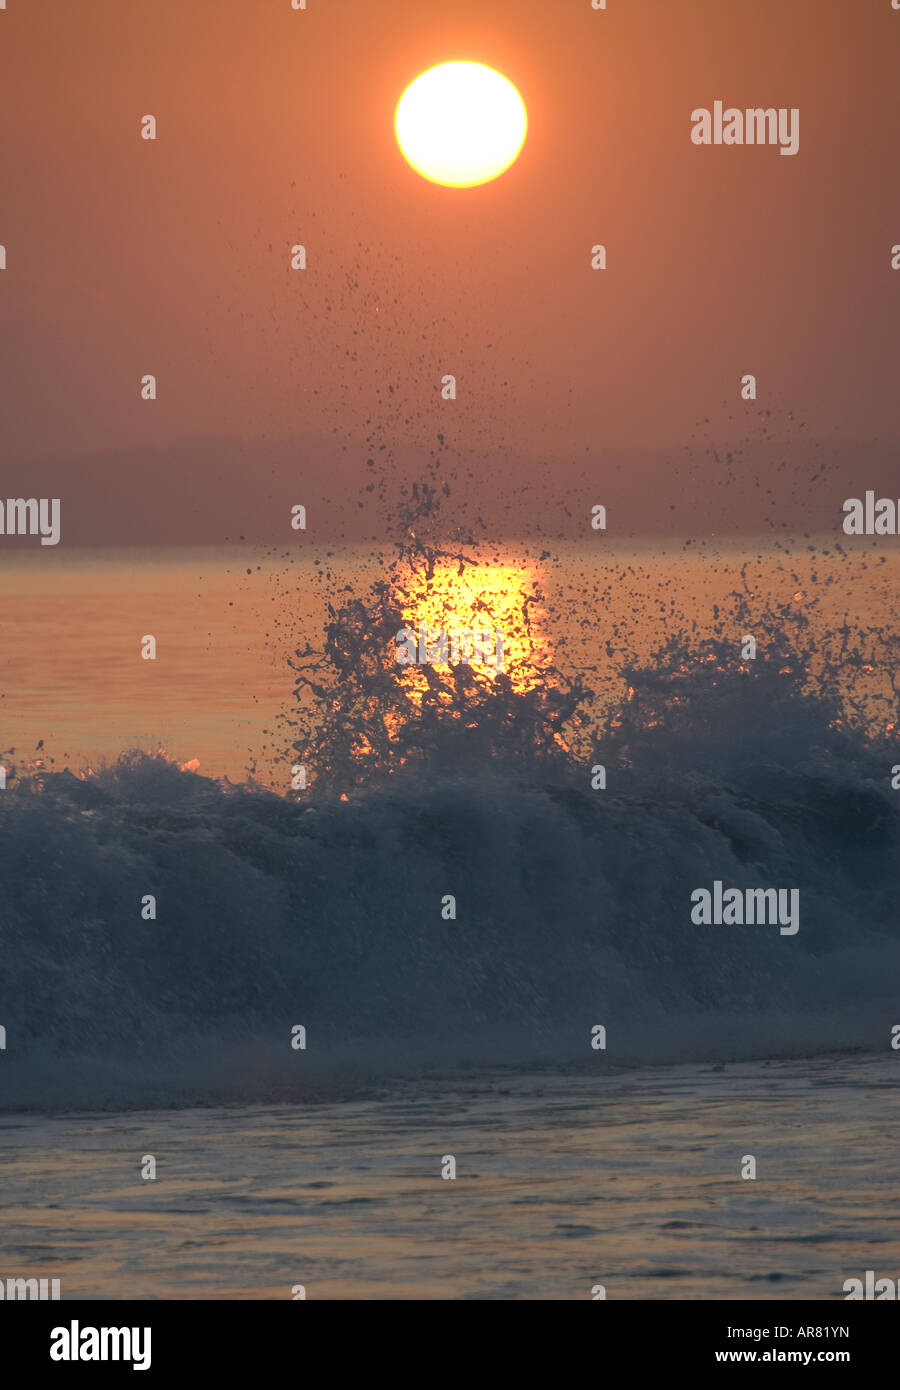 Sunset and wave breaking - Stock Image